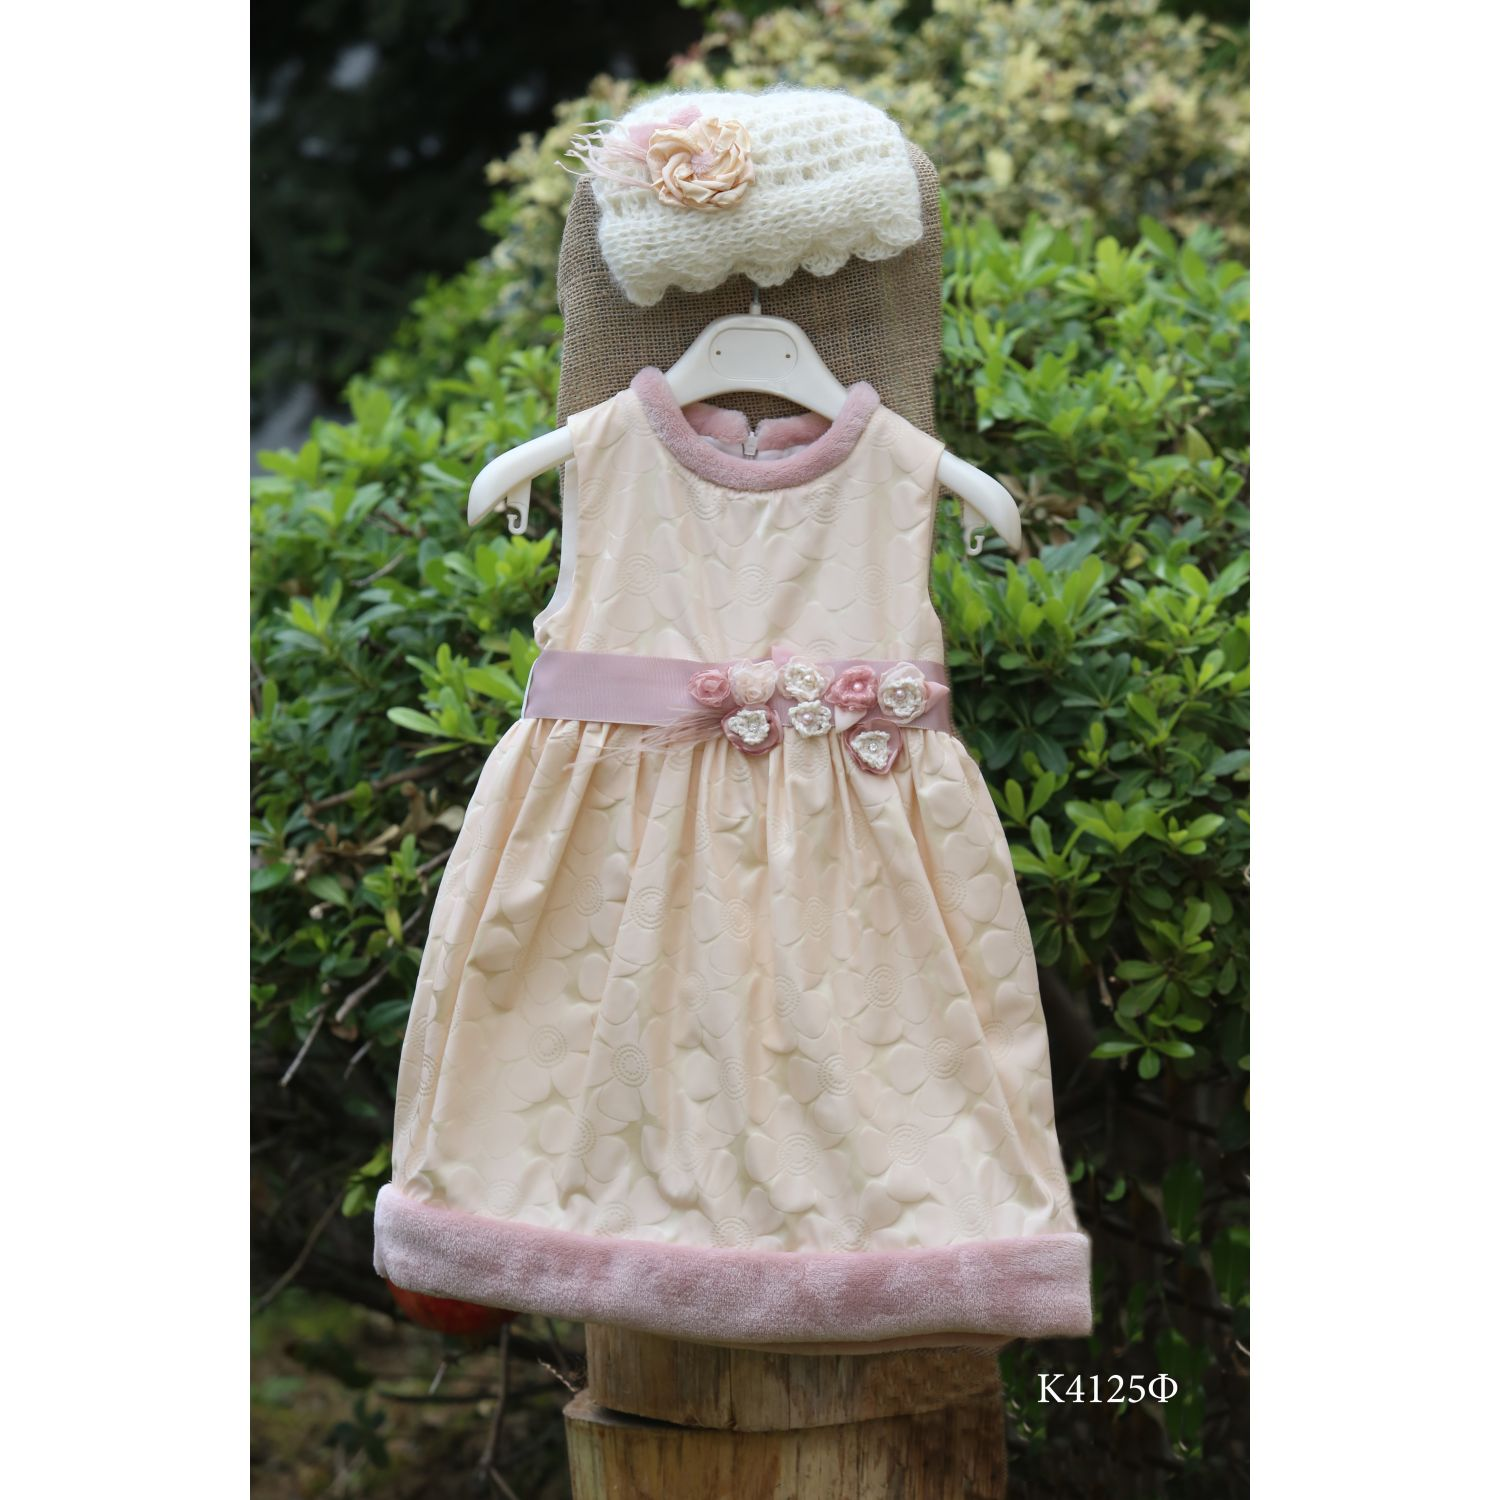 Winter christening dress K4125f